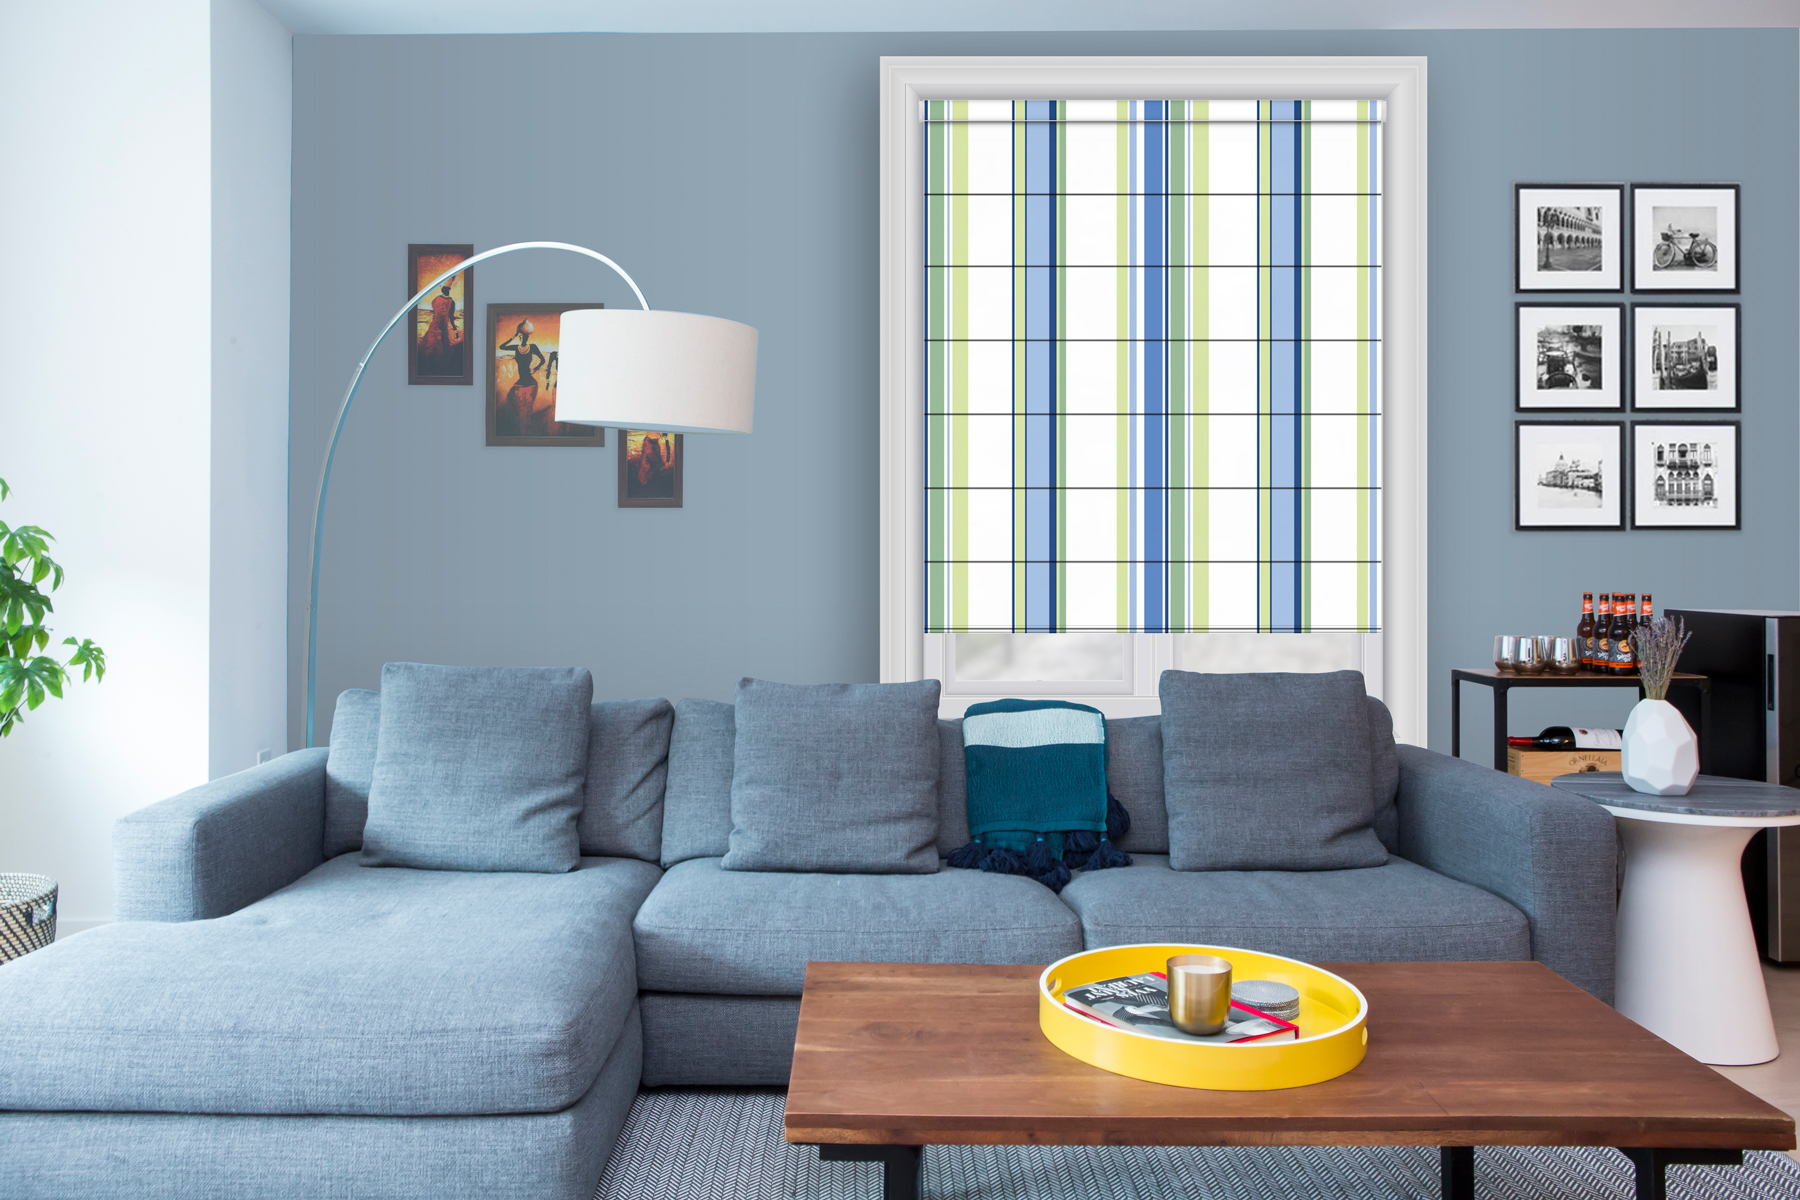 Roman printed blinds striped blue green white